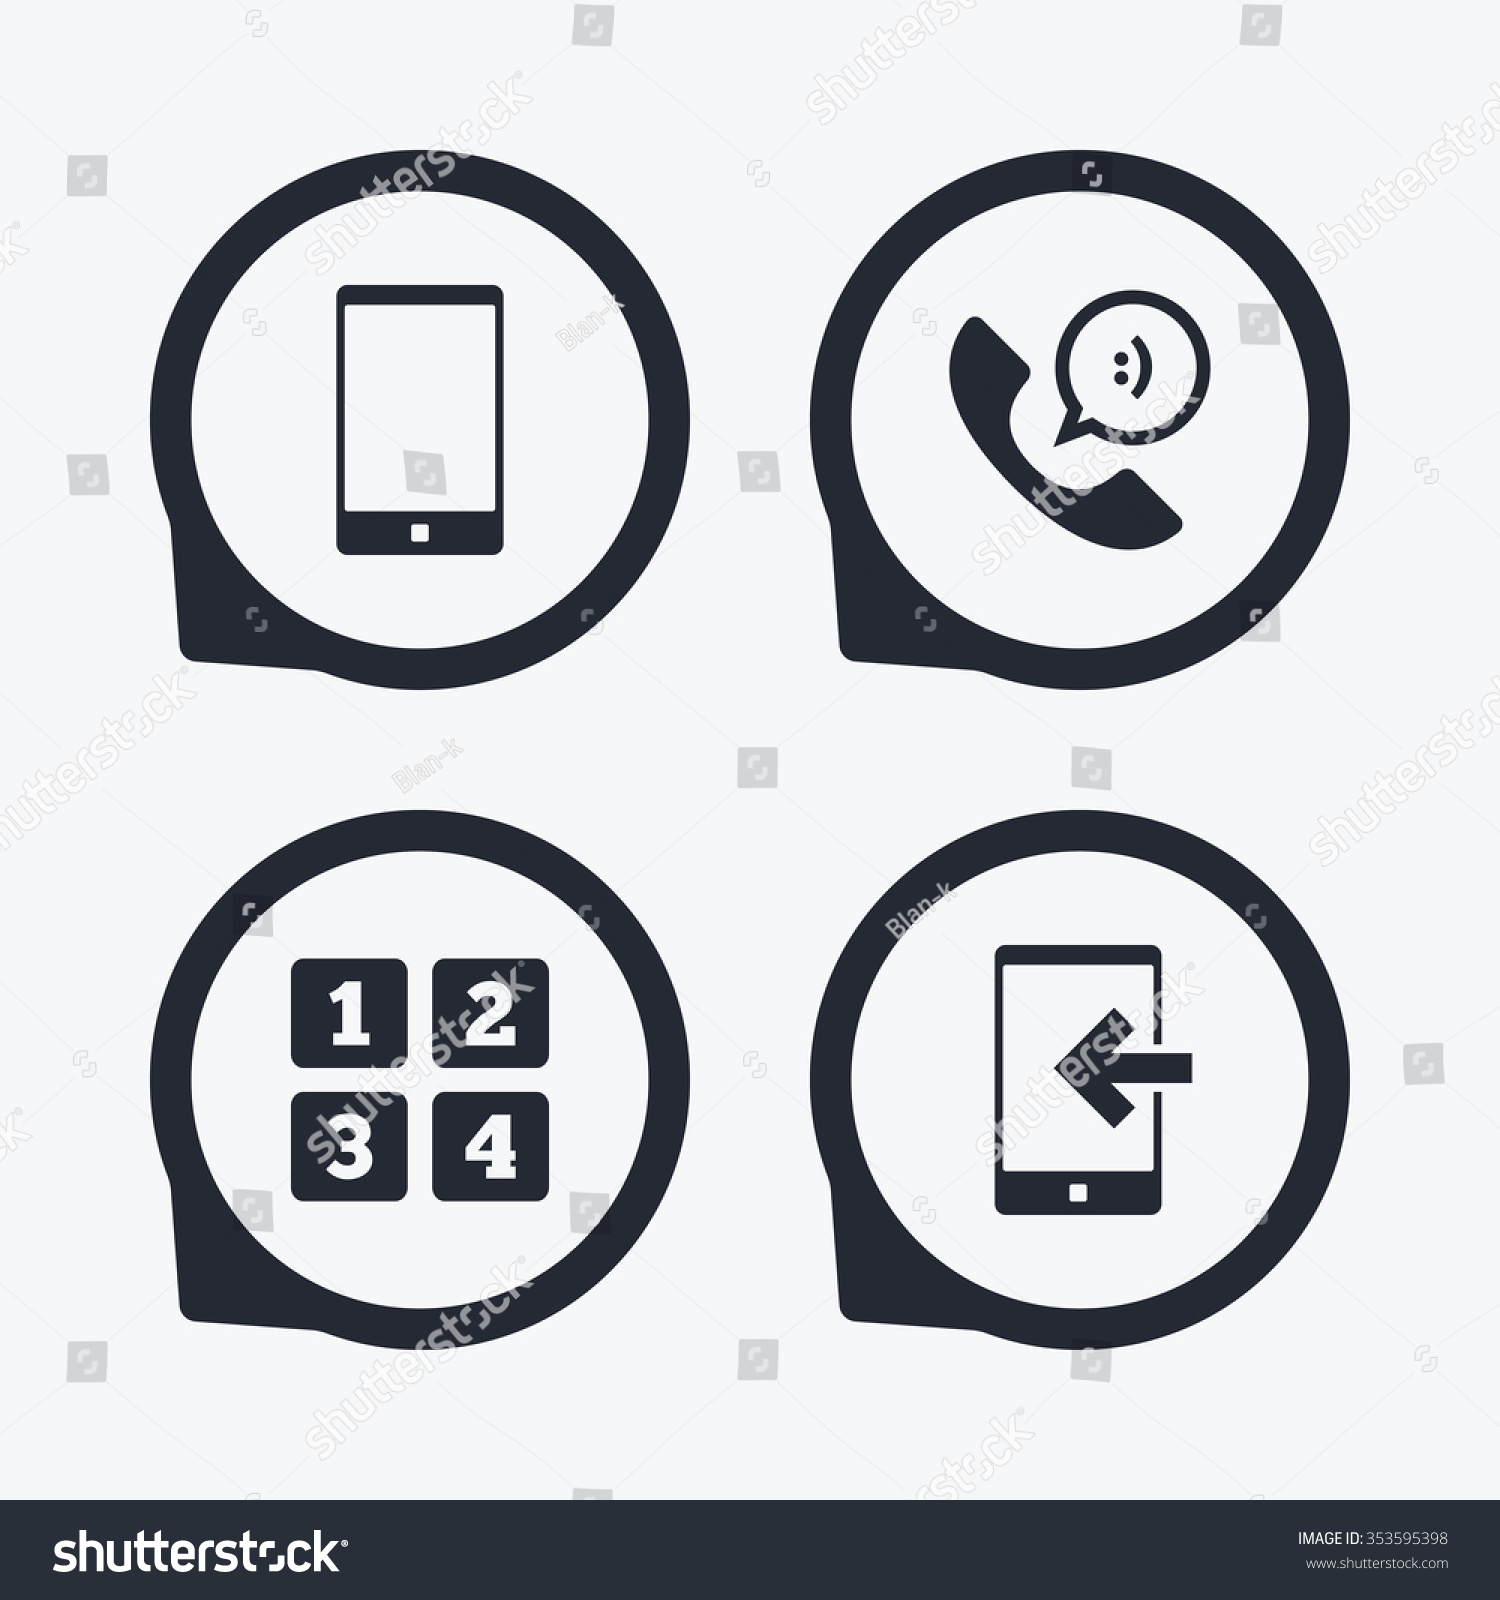 Phone icons smartphone incoming call sign stock vector 353595398 phone icons smartphone incoming call sign call center support symbol cellphone keyboard symbol biocorpaavc Images